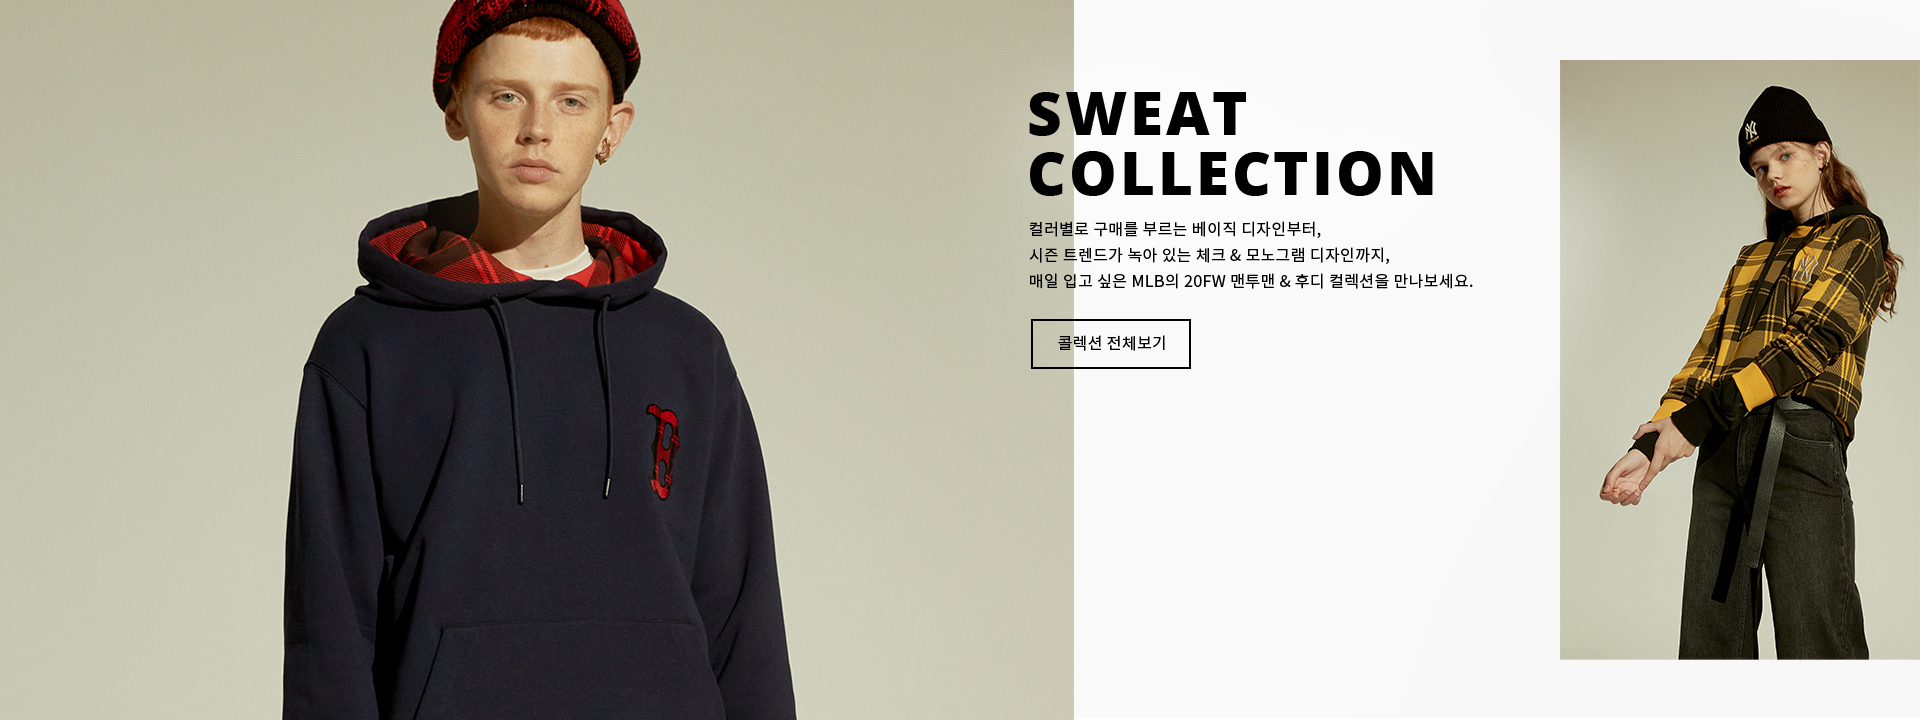 SWEAT COLLECTION 2